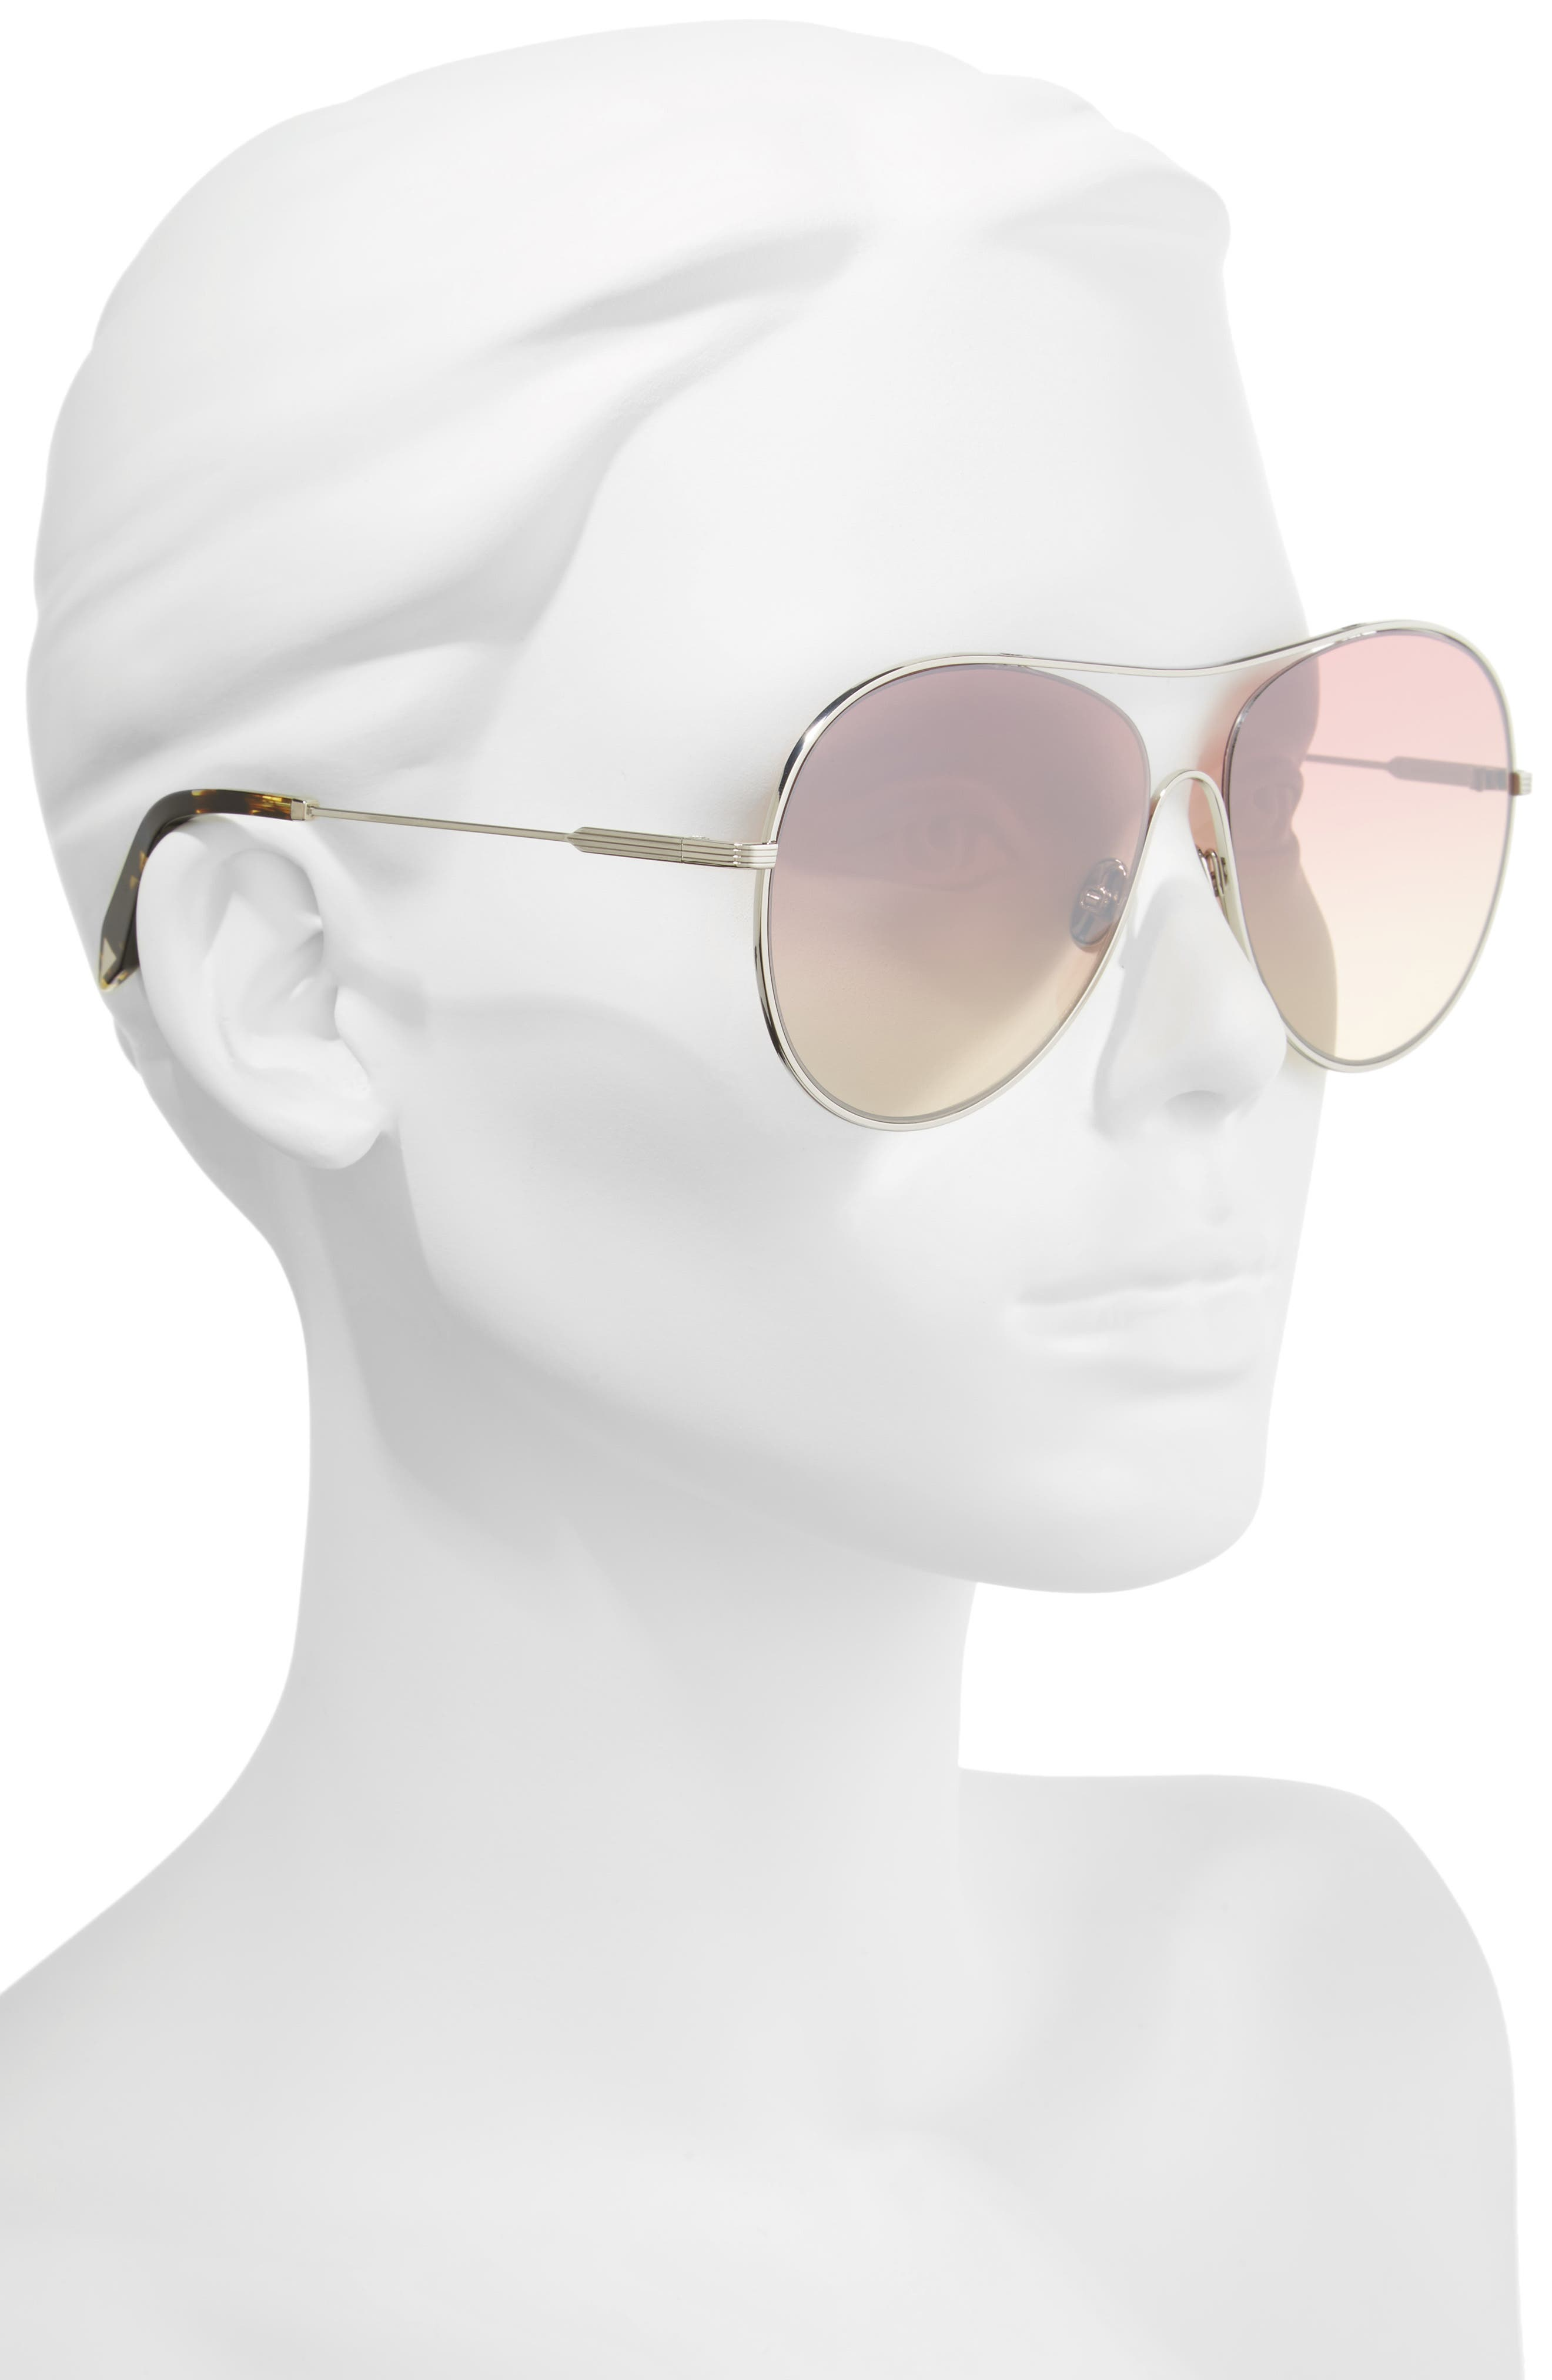 Loop 63mm Oversize Round Sunglasses,                             Alternate thumbnail 2, color,                             Luna